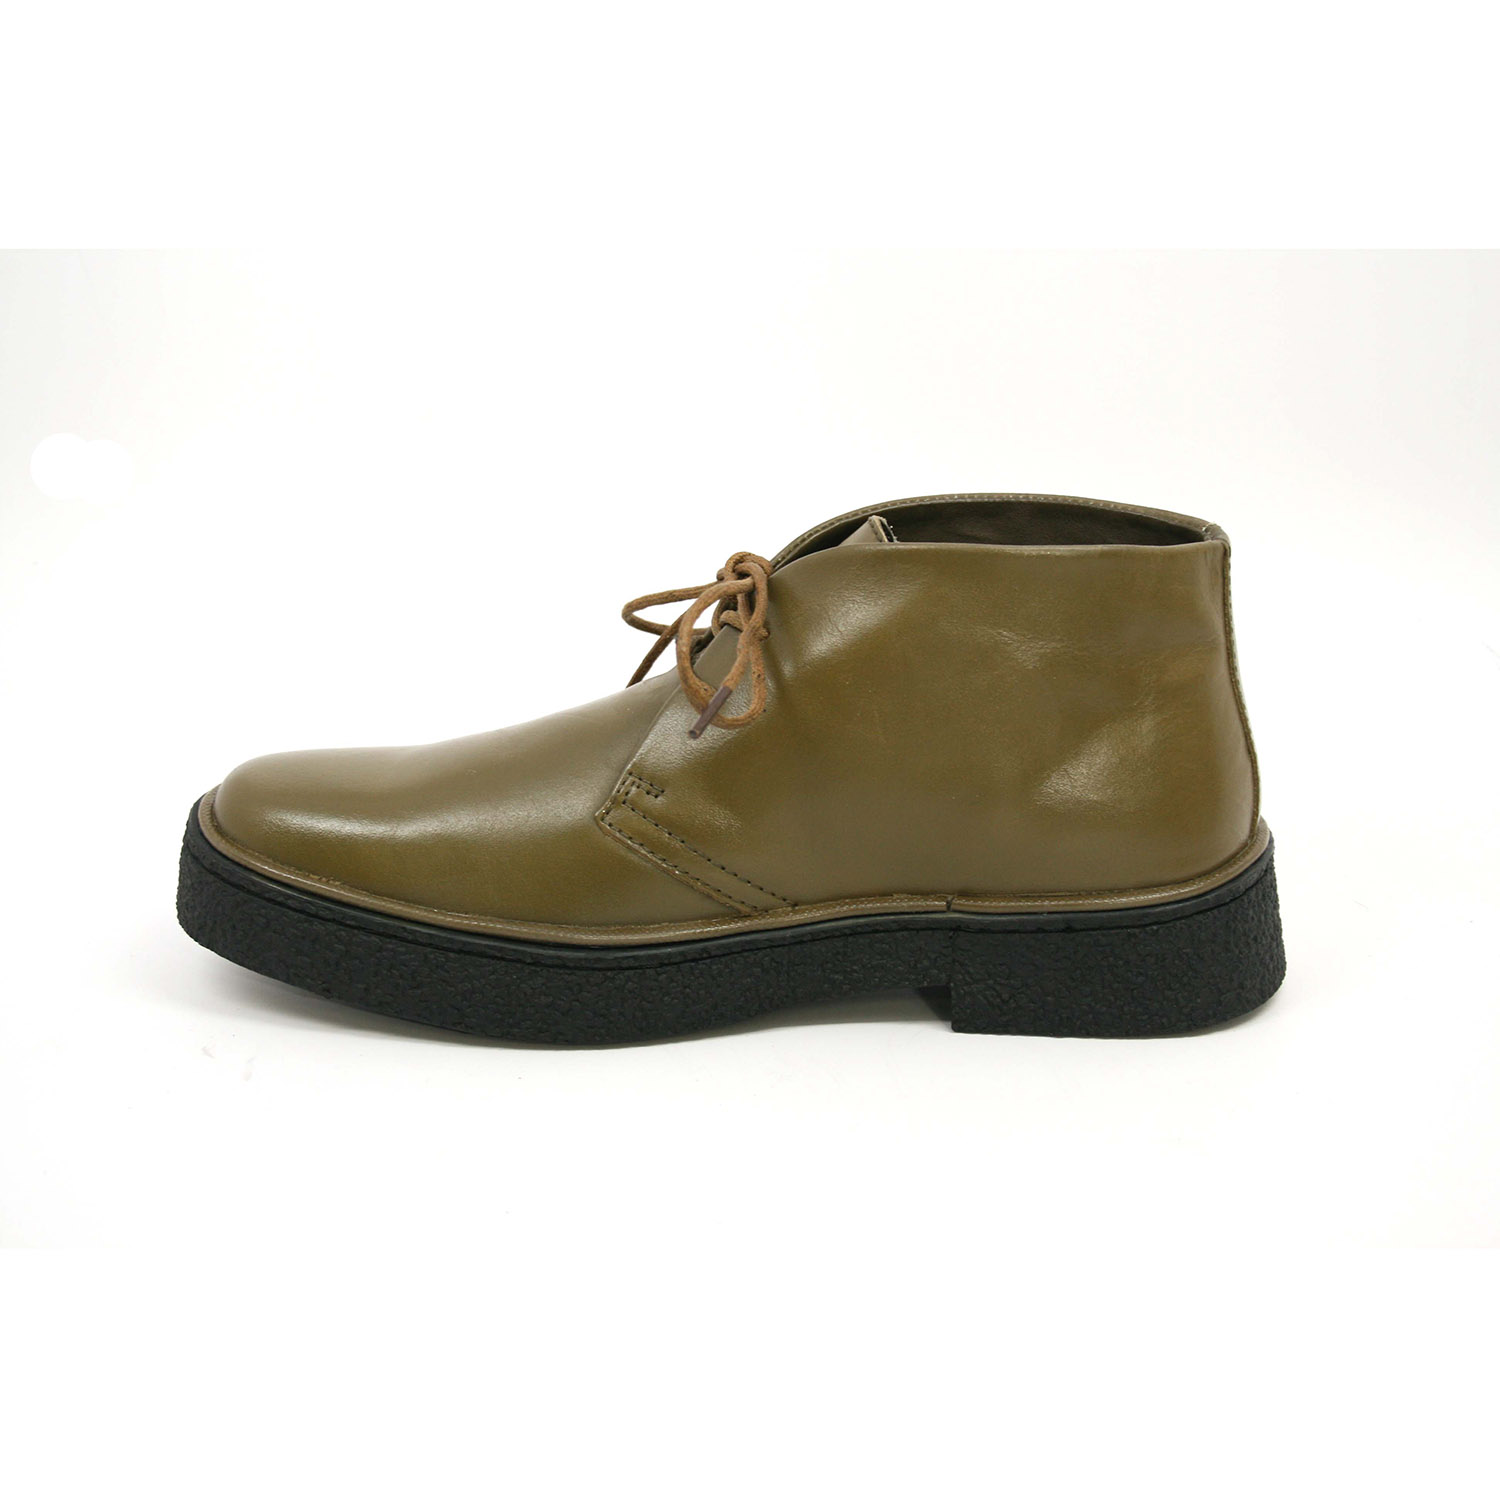 British Collection Men's Playboy Chukka Boot Olive Leather [1226 ...